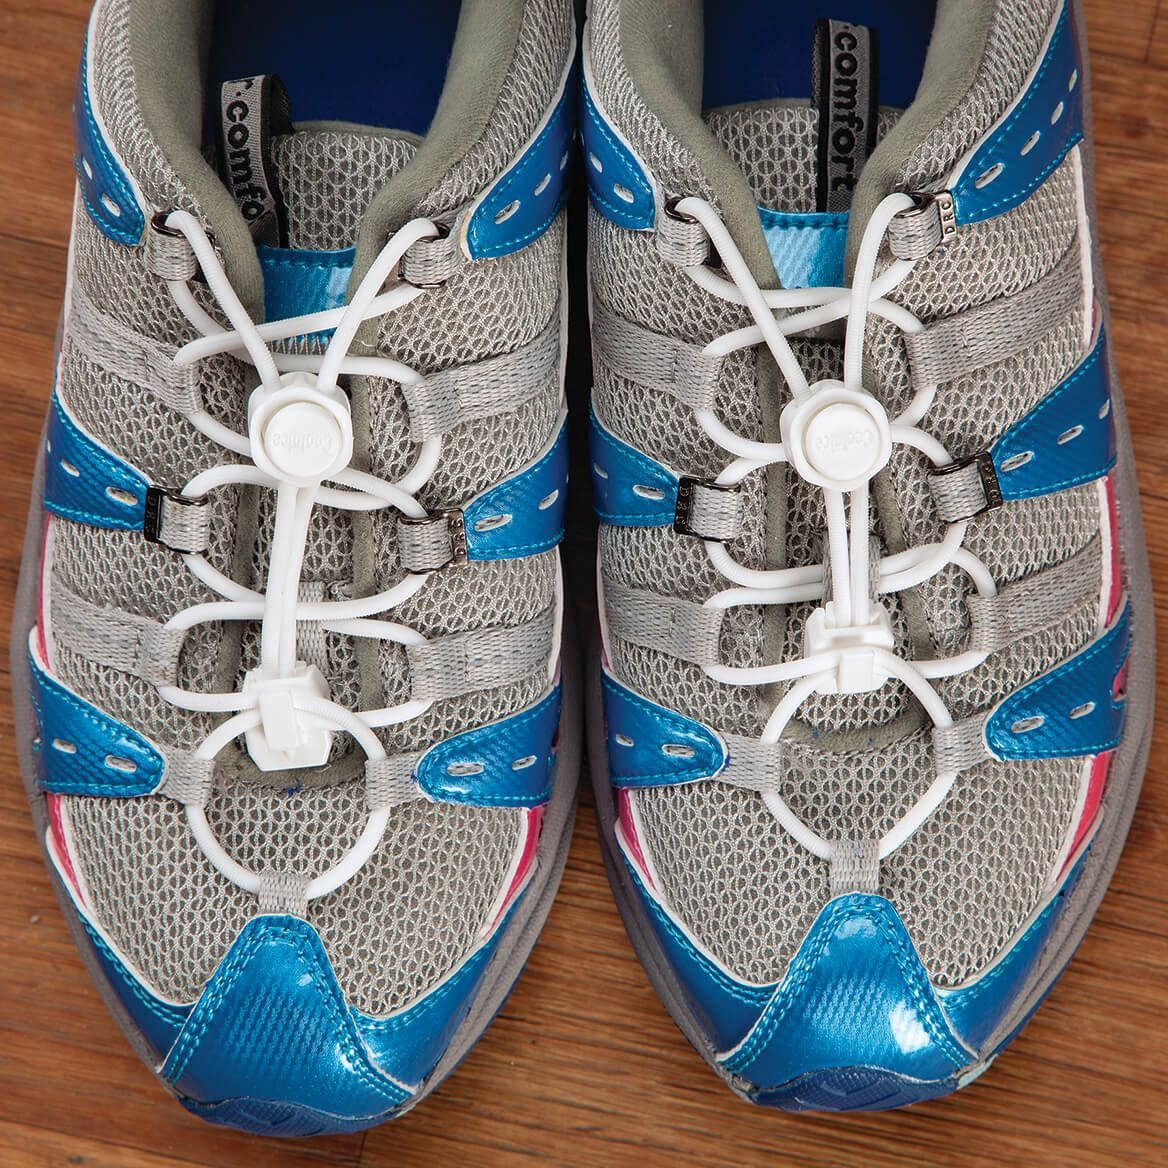 Silver Steps™ Locking Stretch Shoe Laces-371372